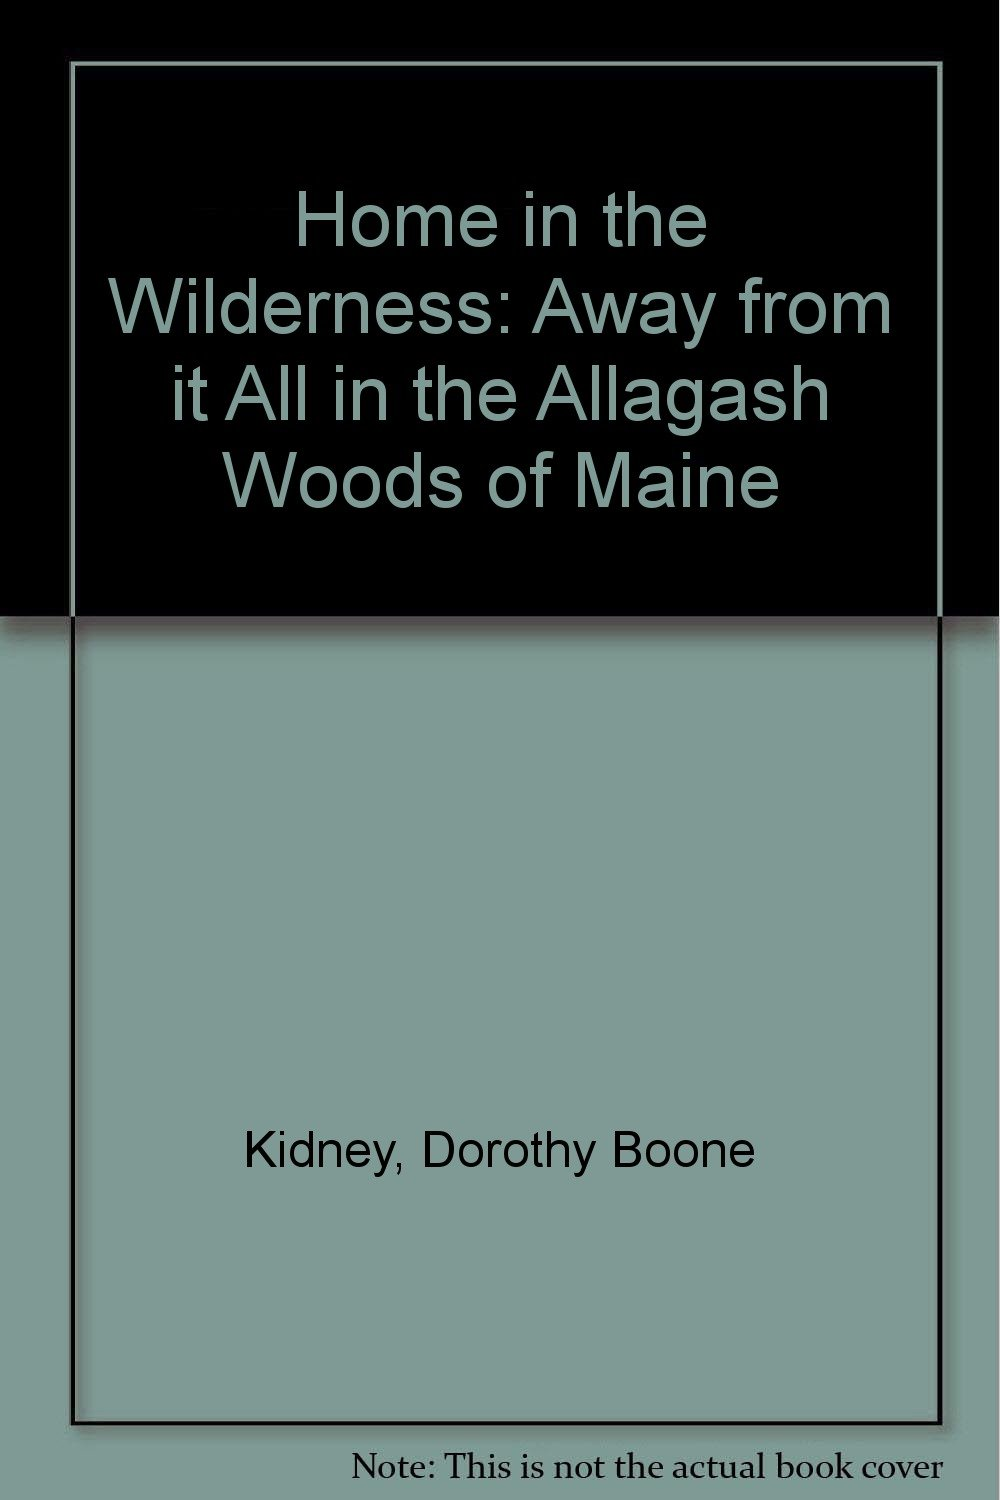 Home in the Wilderness: Away from it All in the Allagash Woods of Maine